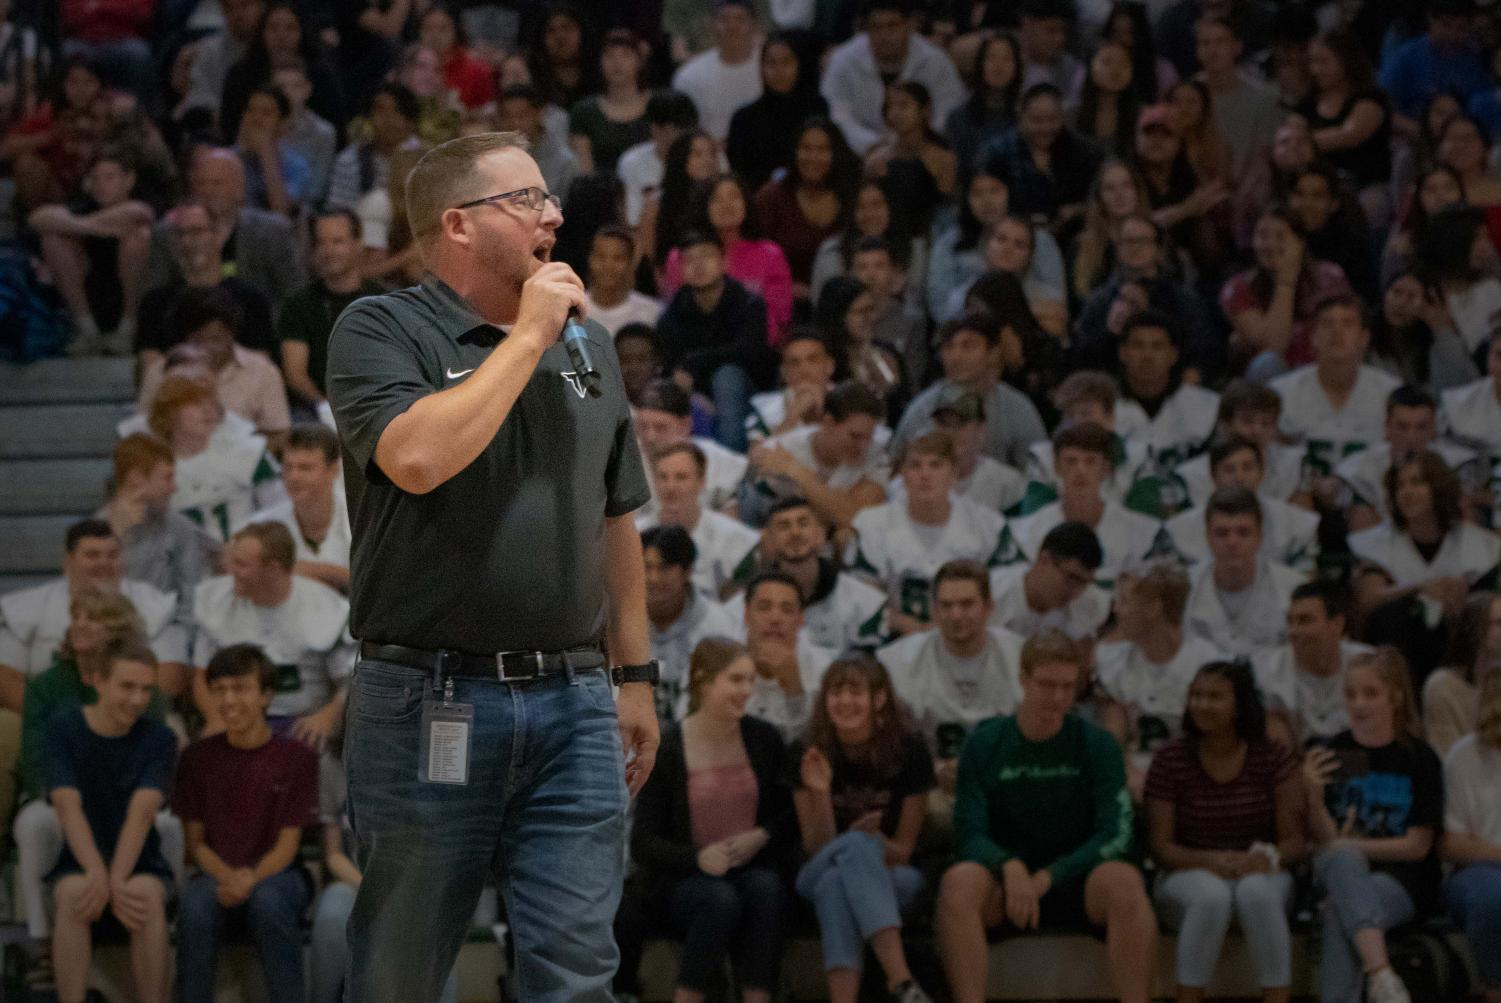 Principal Brian Bailey speaks to students at the Welcome Back Assembly. For some students the assembly was the first time they had seen the new principal.